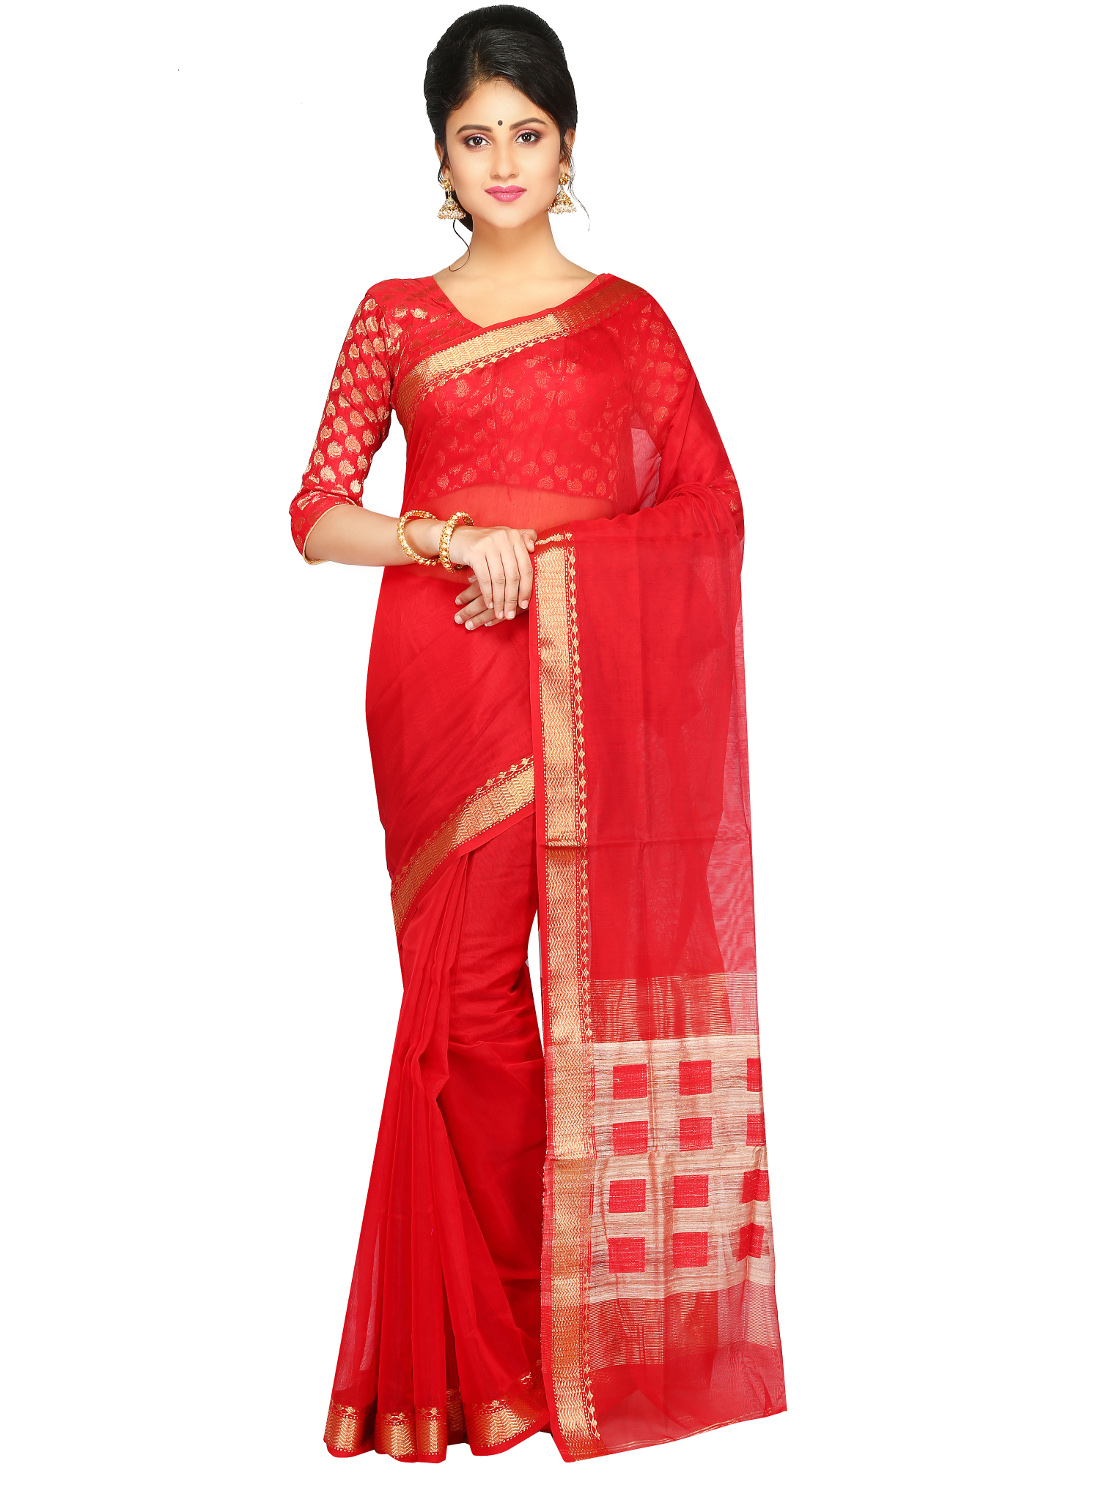 Pinkloom Women's Handloom Silk Cotton Saree Of Bengal With Blouse Piece From The Weavers Of Famous Dhakai Jamdani Saree(red)